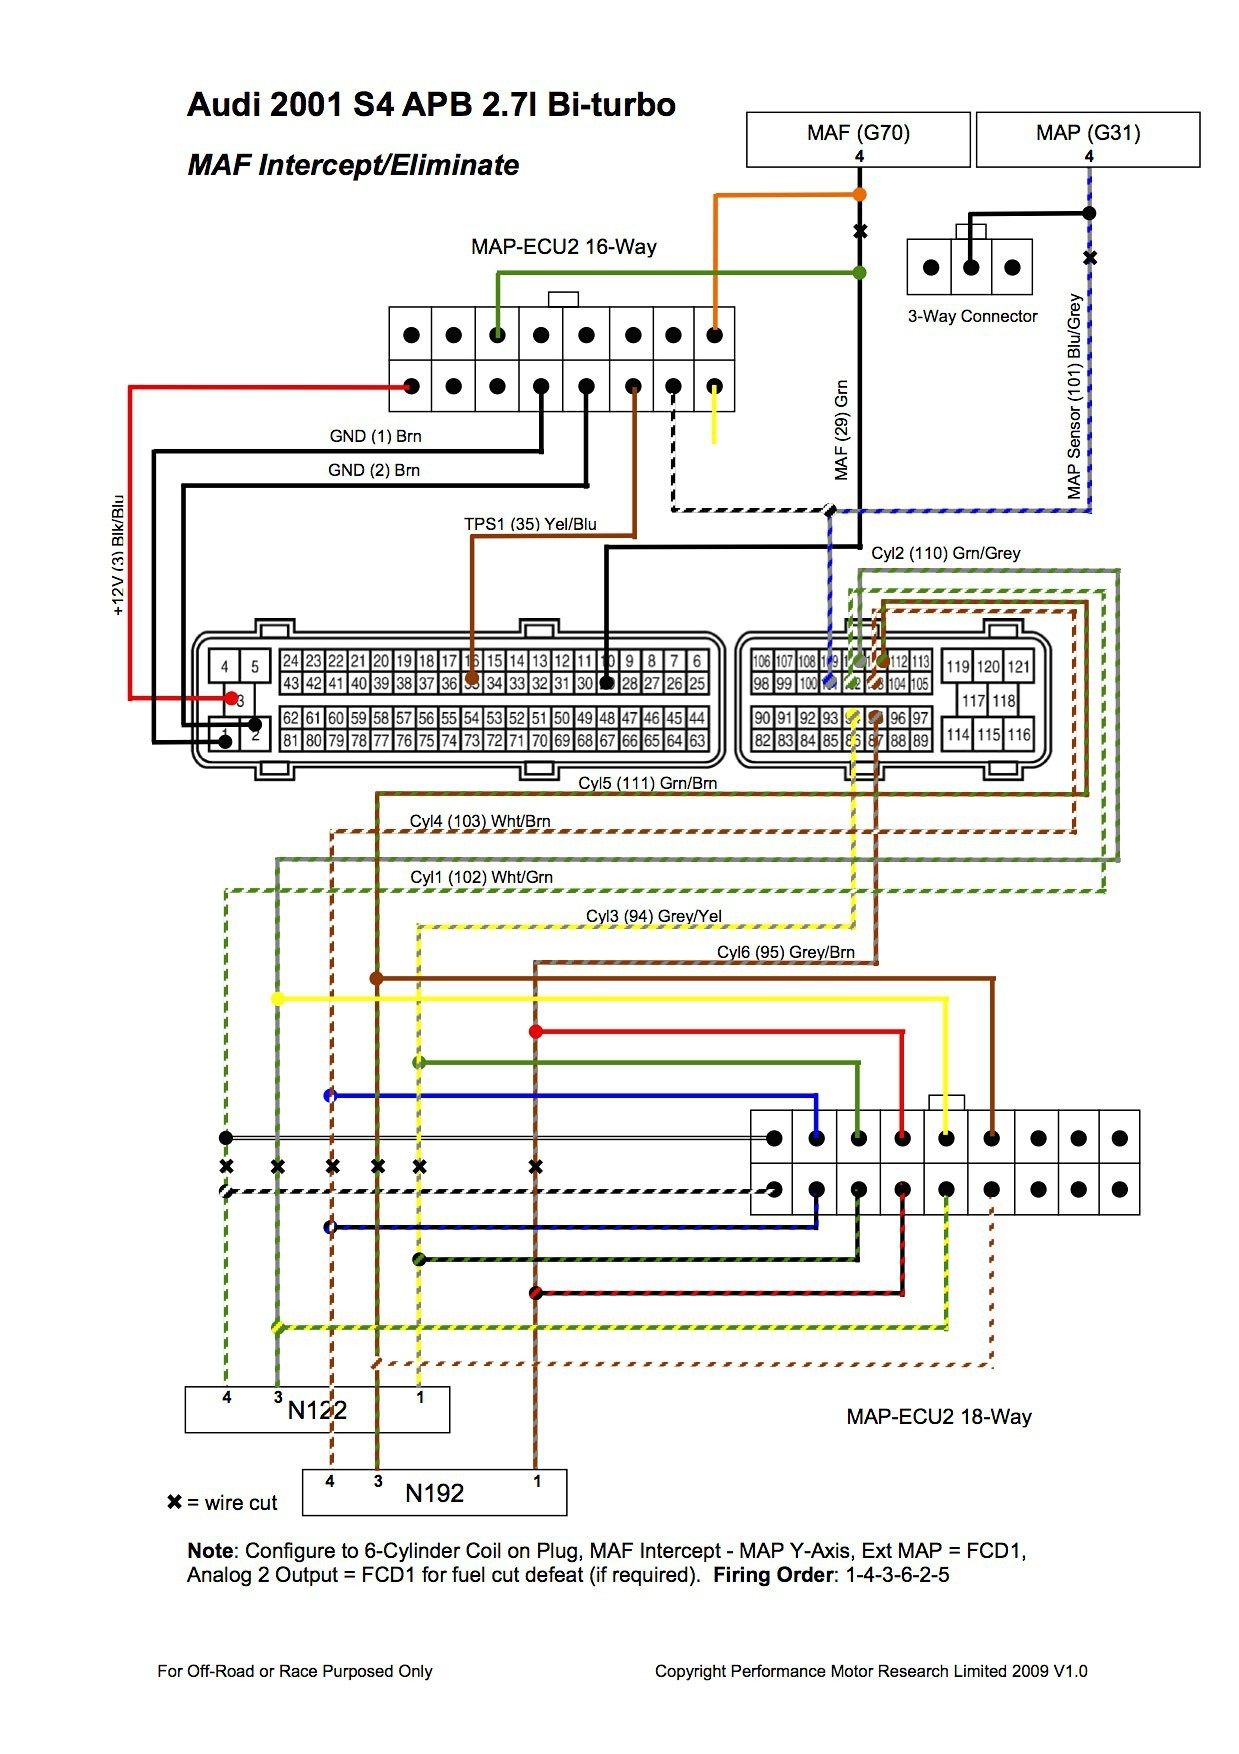 car stereo wiring harness diagram ford ranger 1998 ford expedition rh banyan palace com